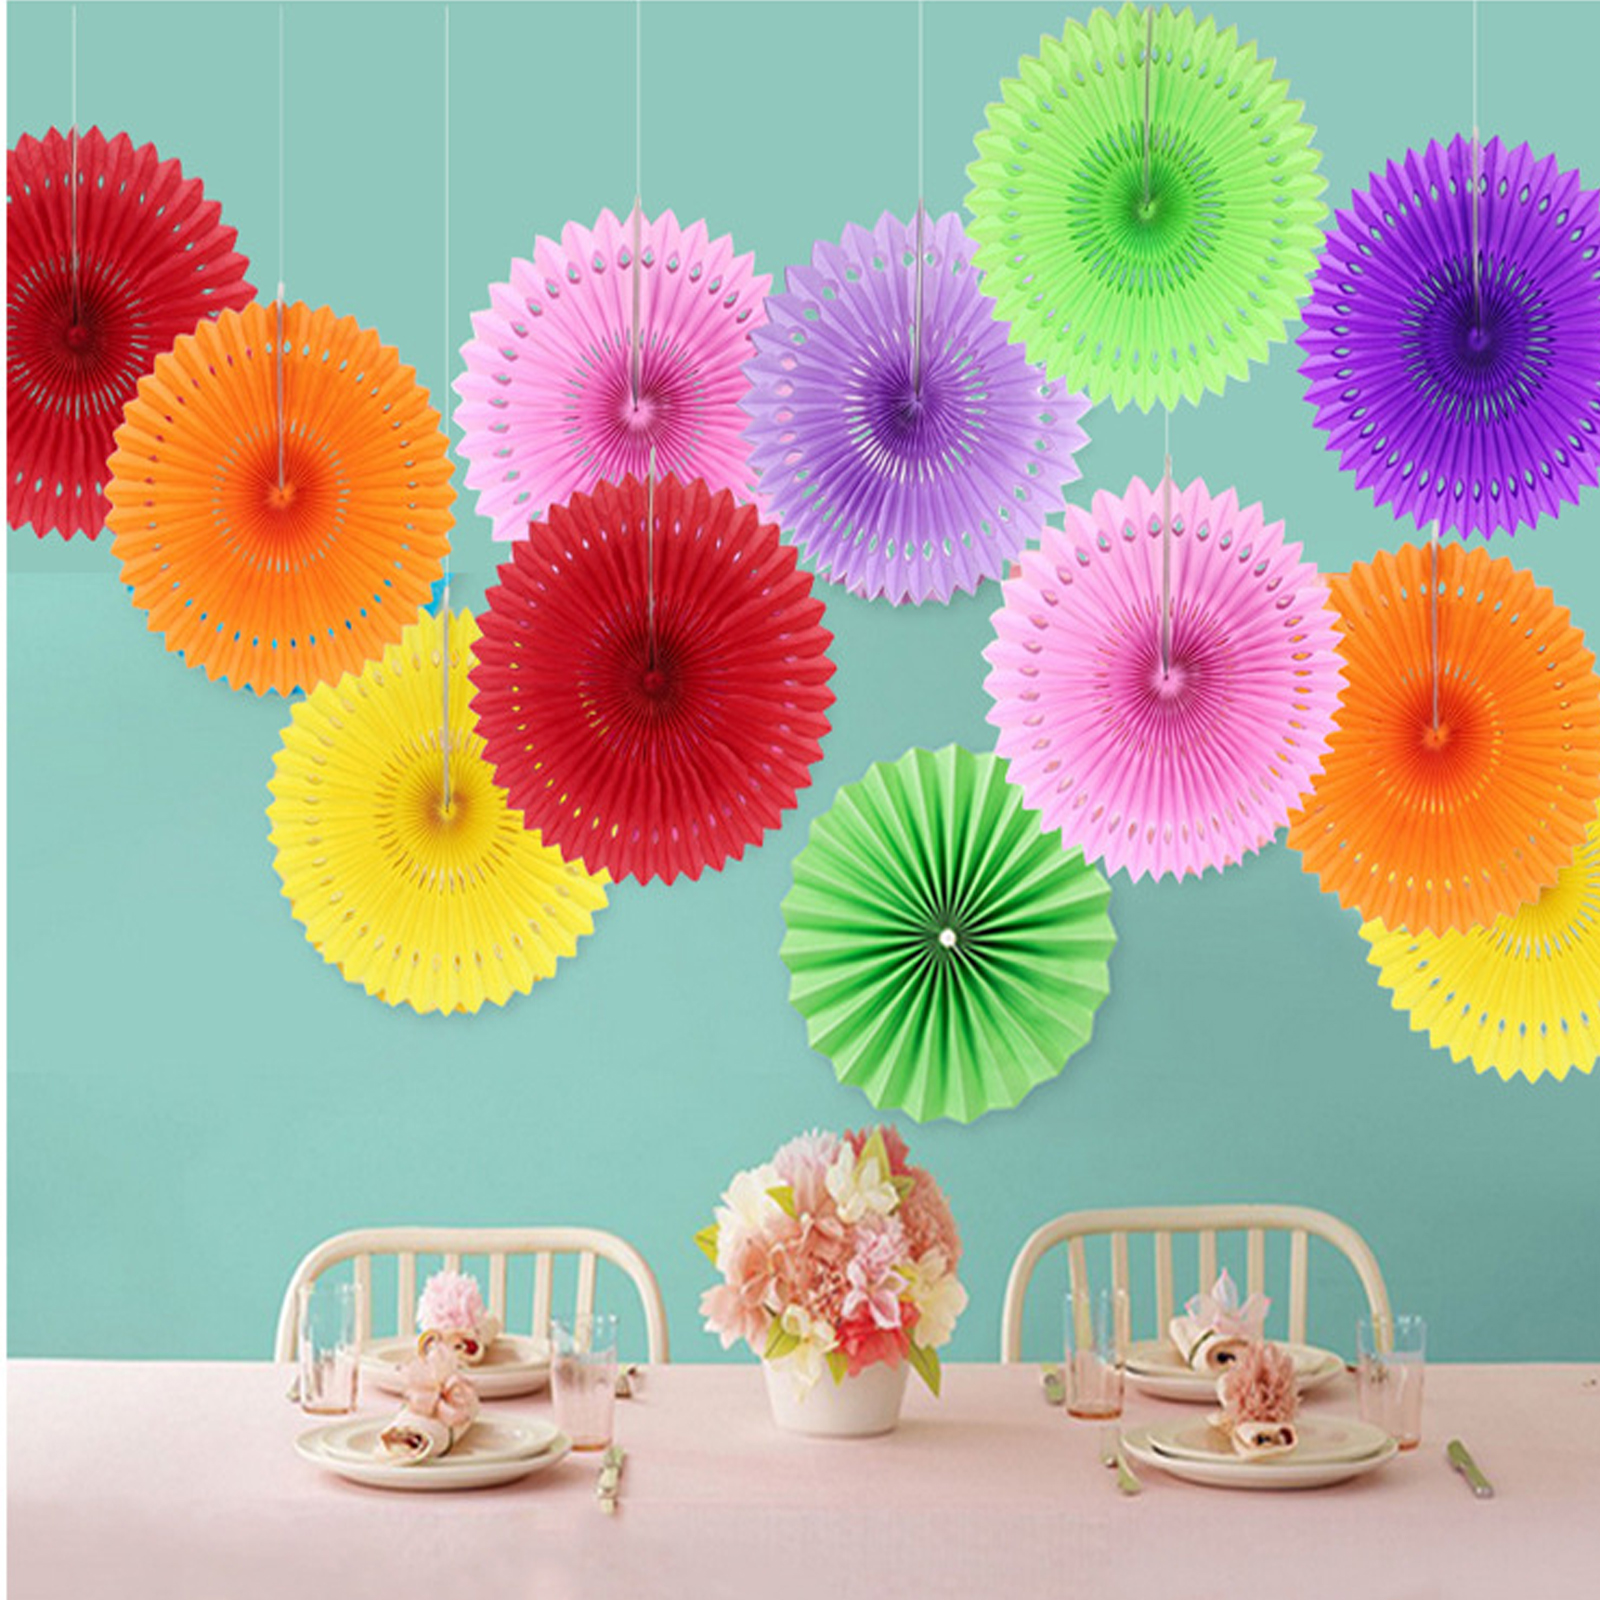 Us 0 85 11 Off 1pcs Colorful Paper Fans Birthday Party Hanging Decor Hang Swirl For Mexican Party Supplies Home Wall Baby Shower Decorations In